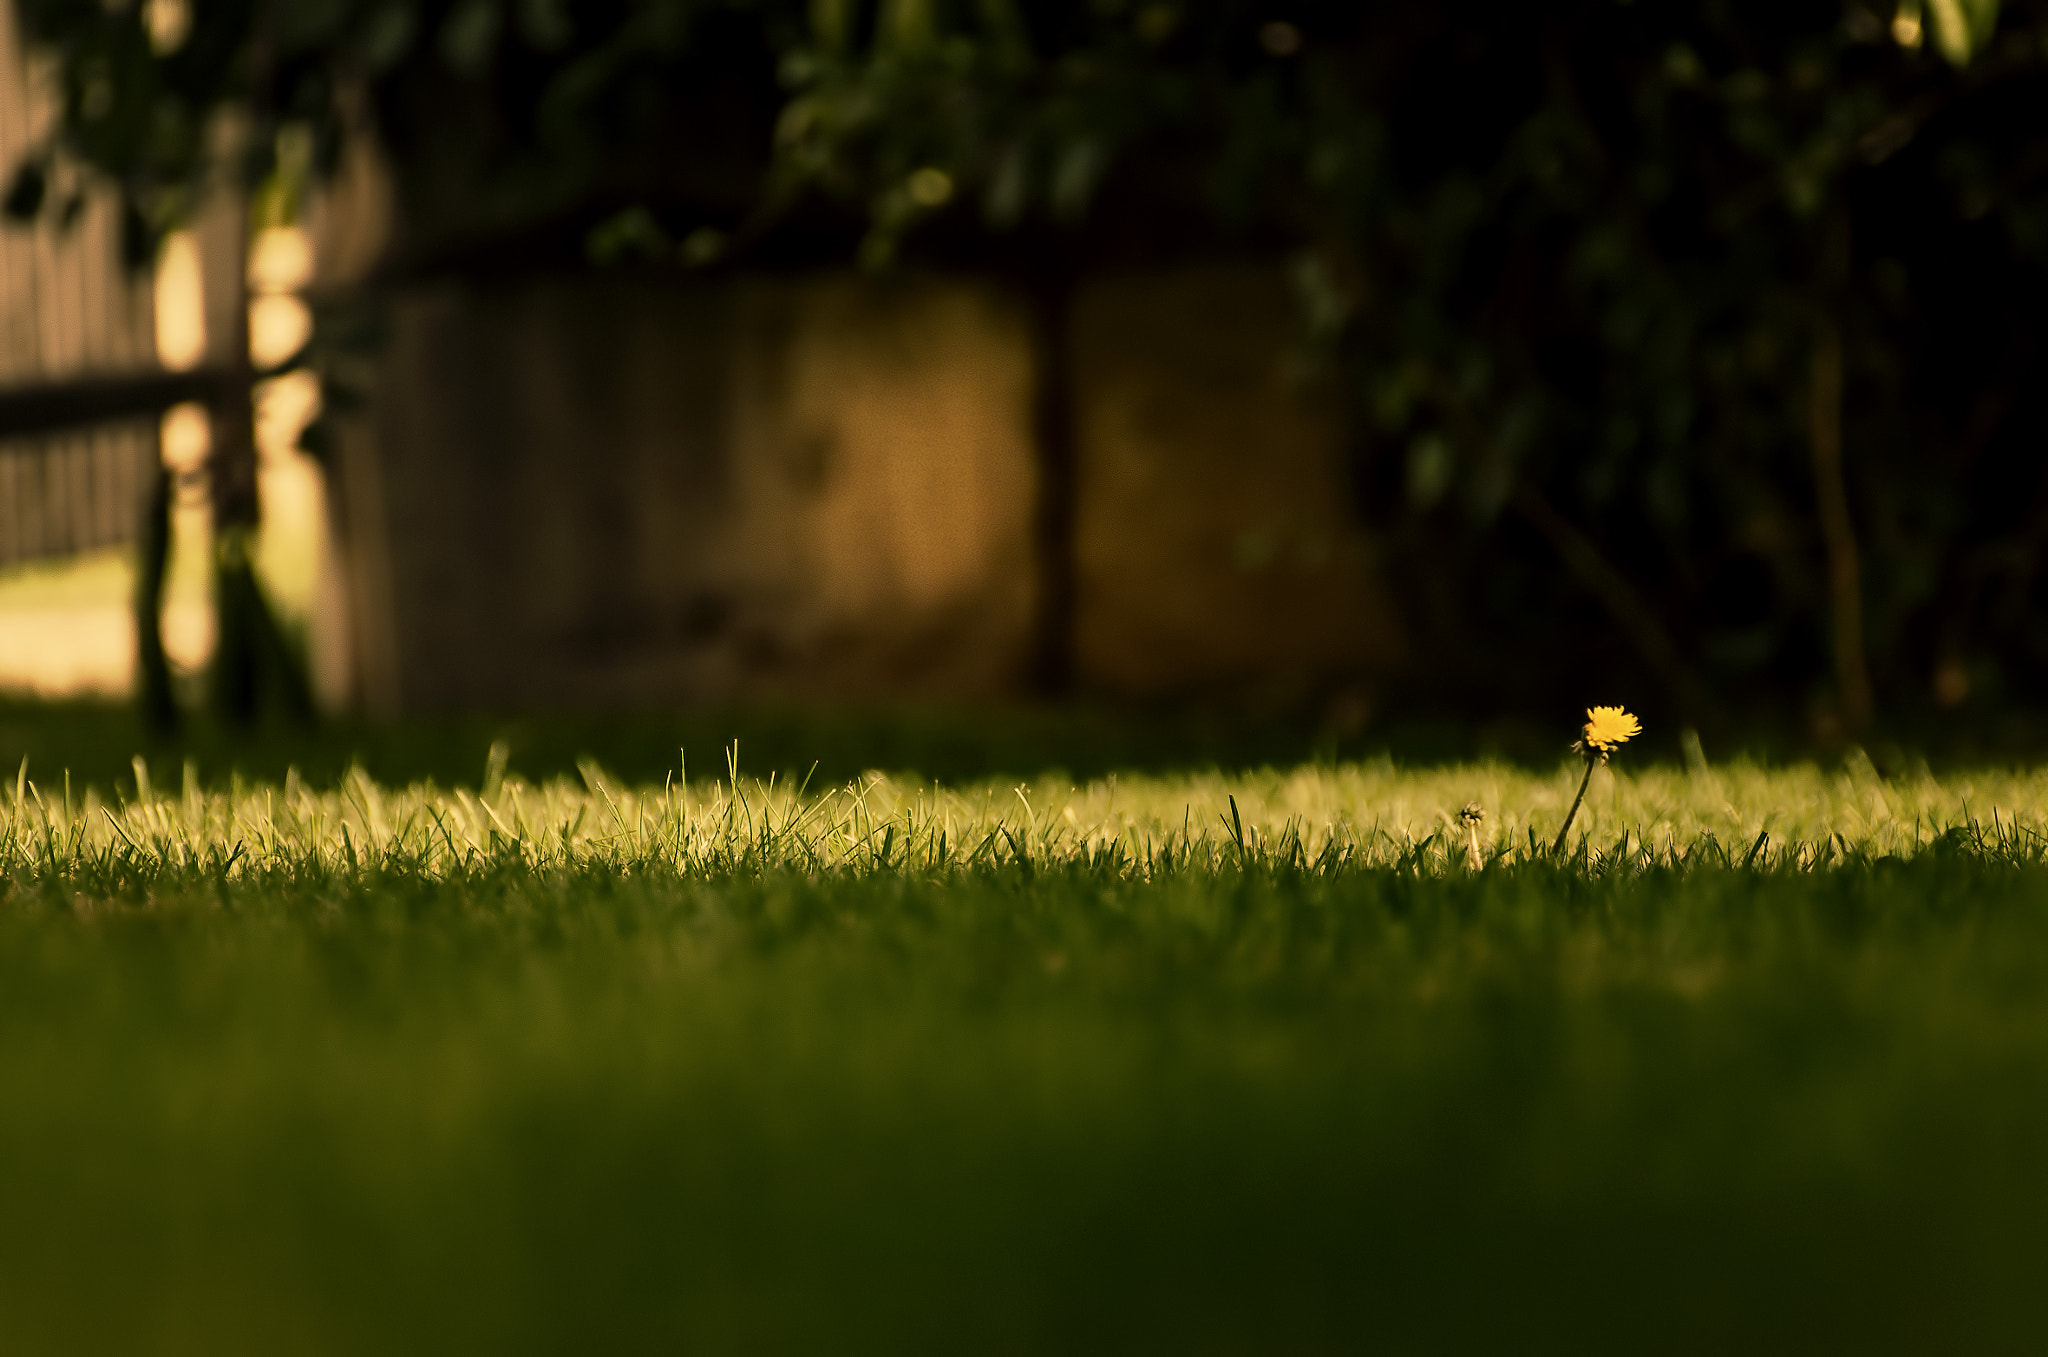 Photograph The Last Dandelion by David Bugyi on 500px